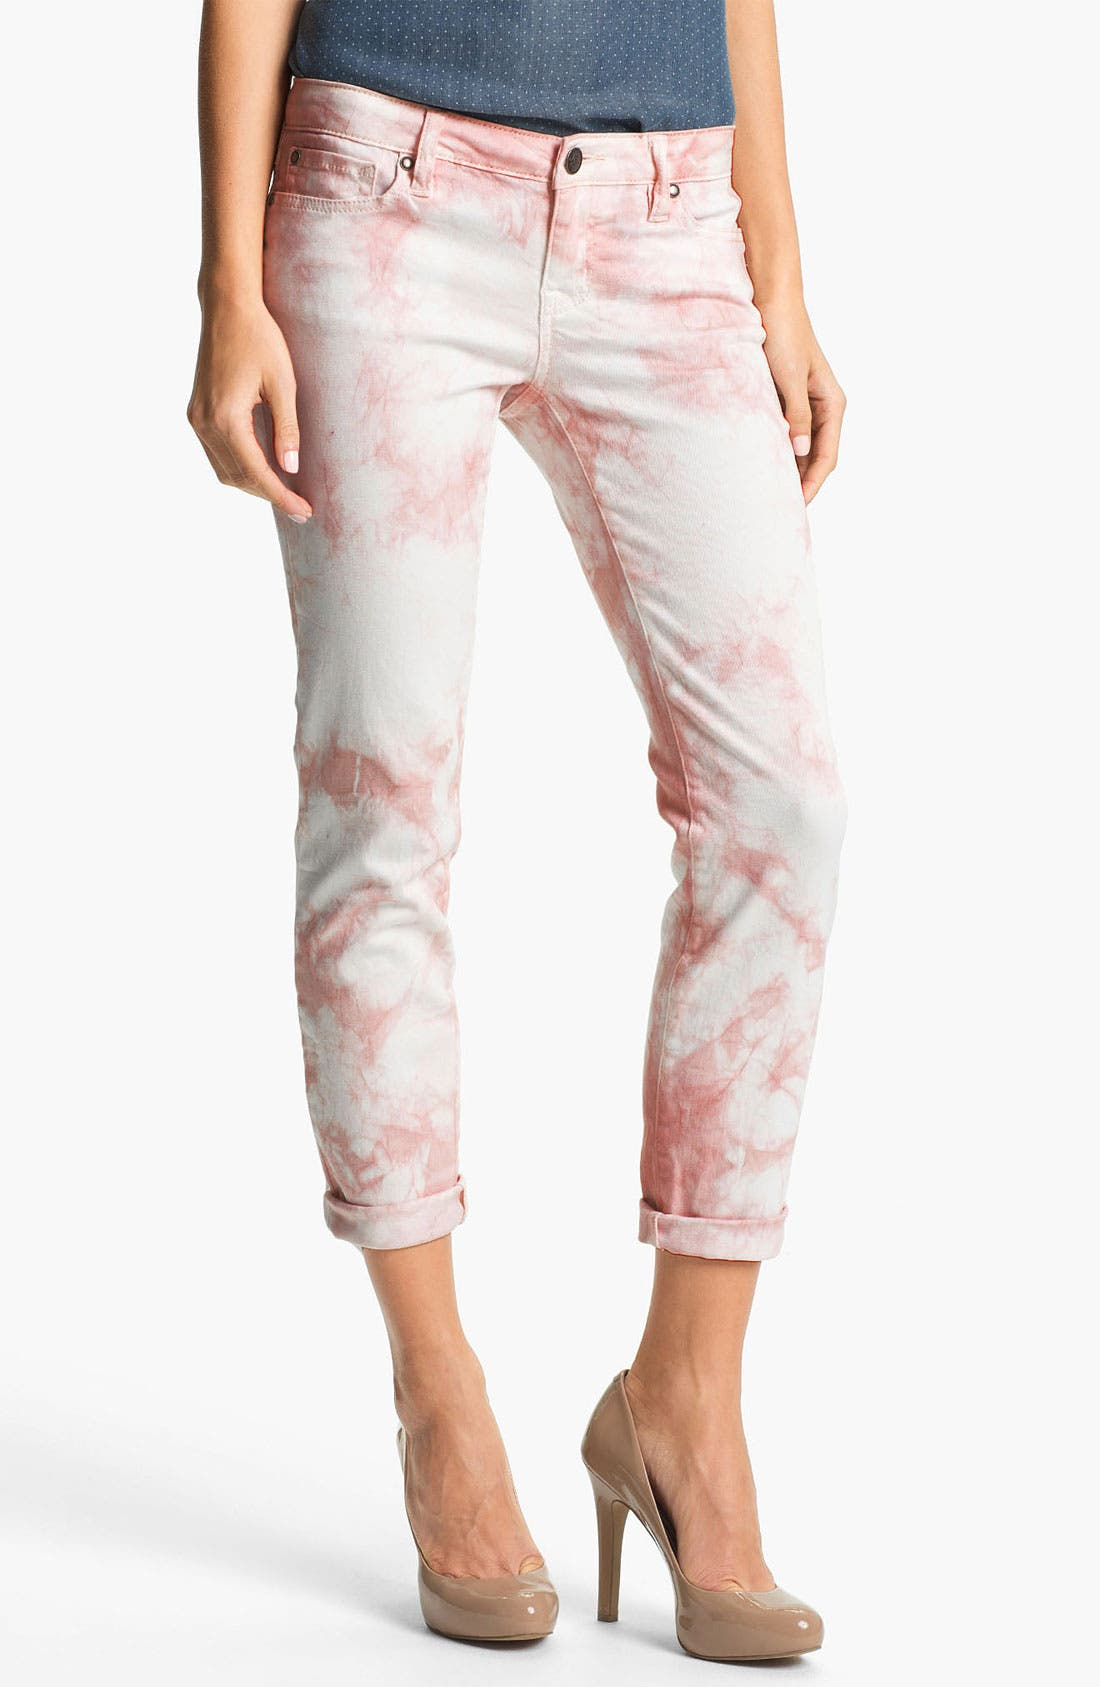 Alternate Image 1 Selected - Jessica Simpson 'Forever' Cuffed Skinny Jeans (Peach Whip) (Online Exclusive)